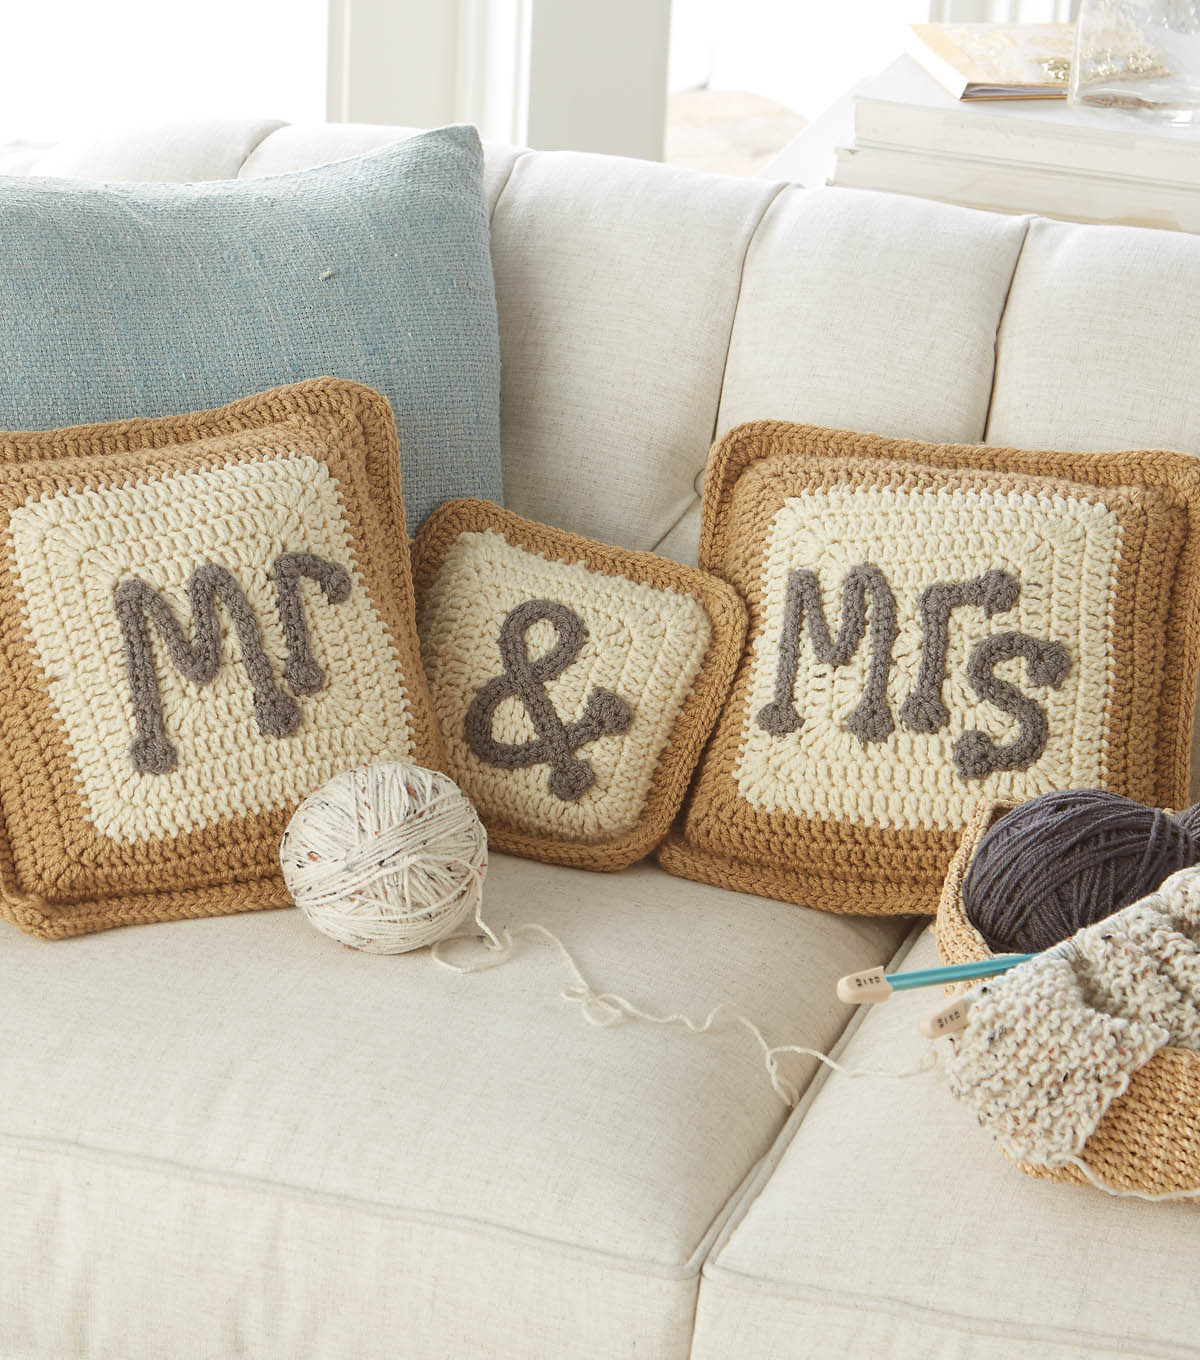 Mr and mrs crocheted pillow cases